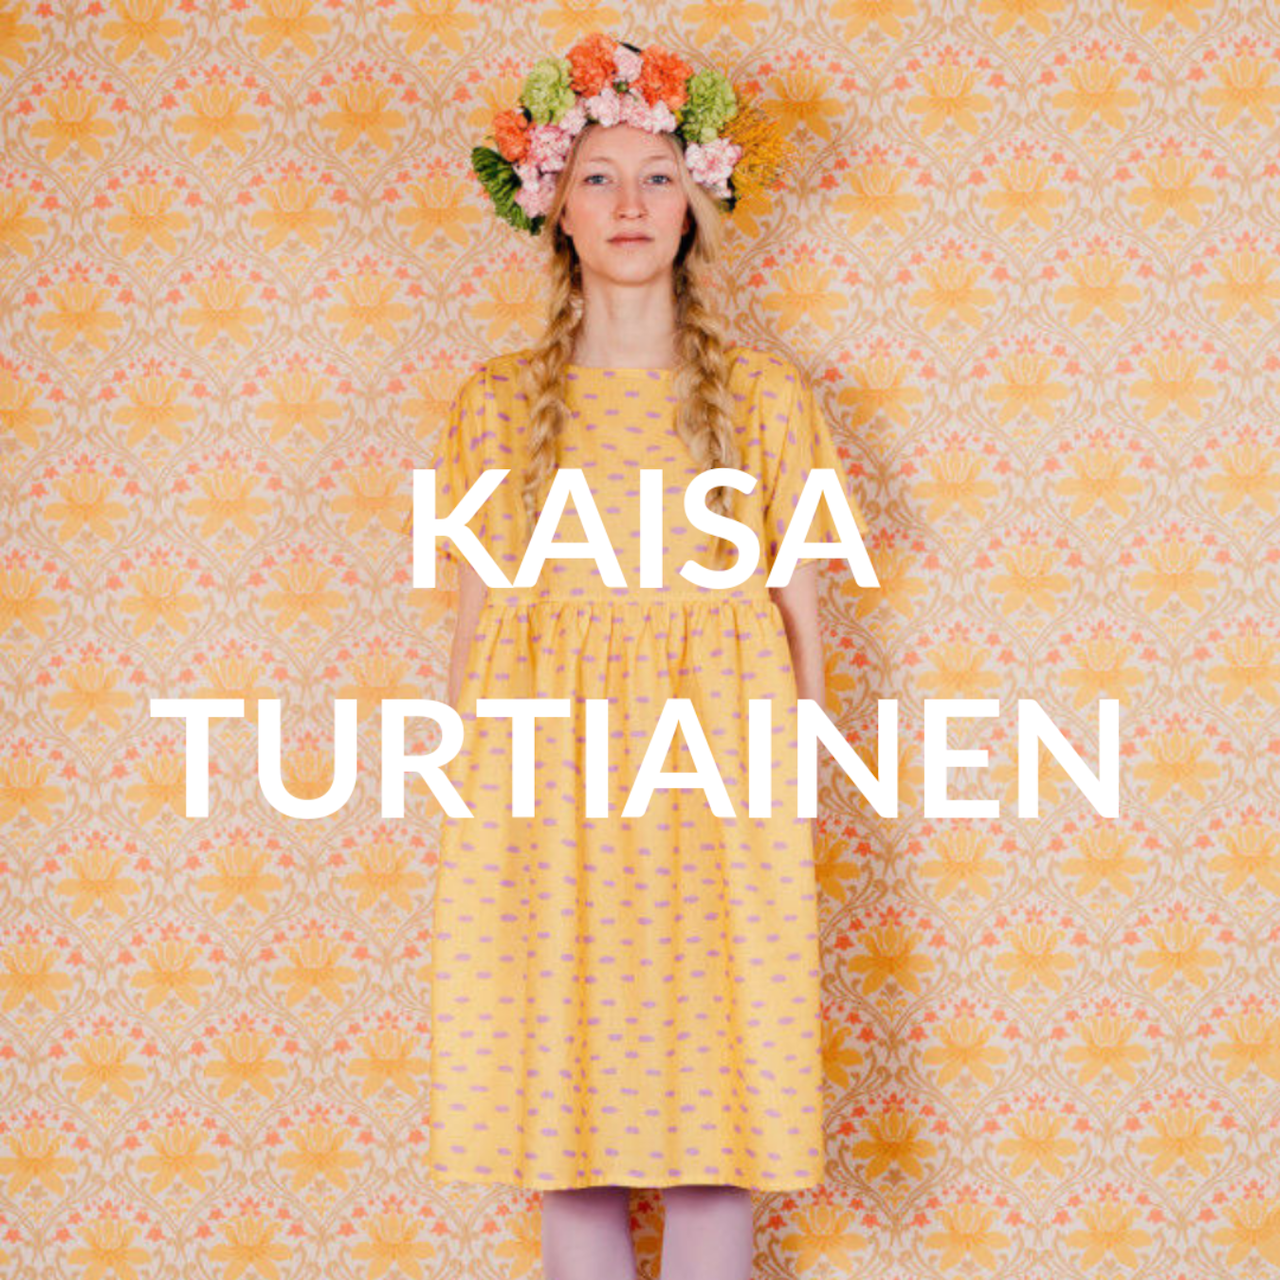 Kaisa Turtiainen